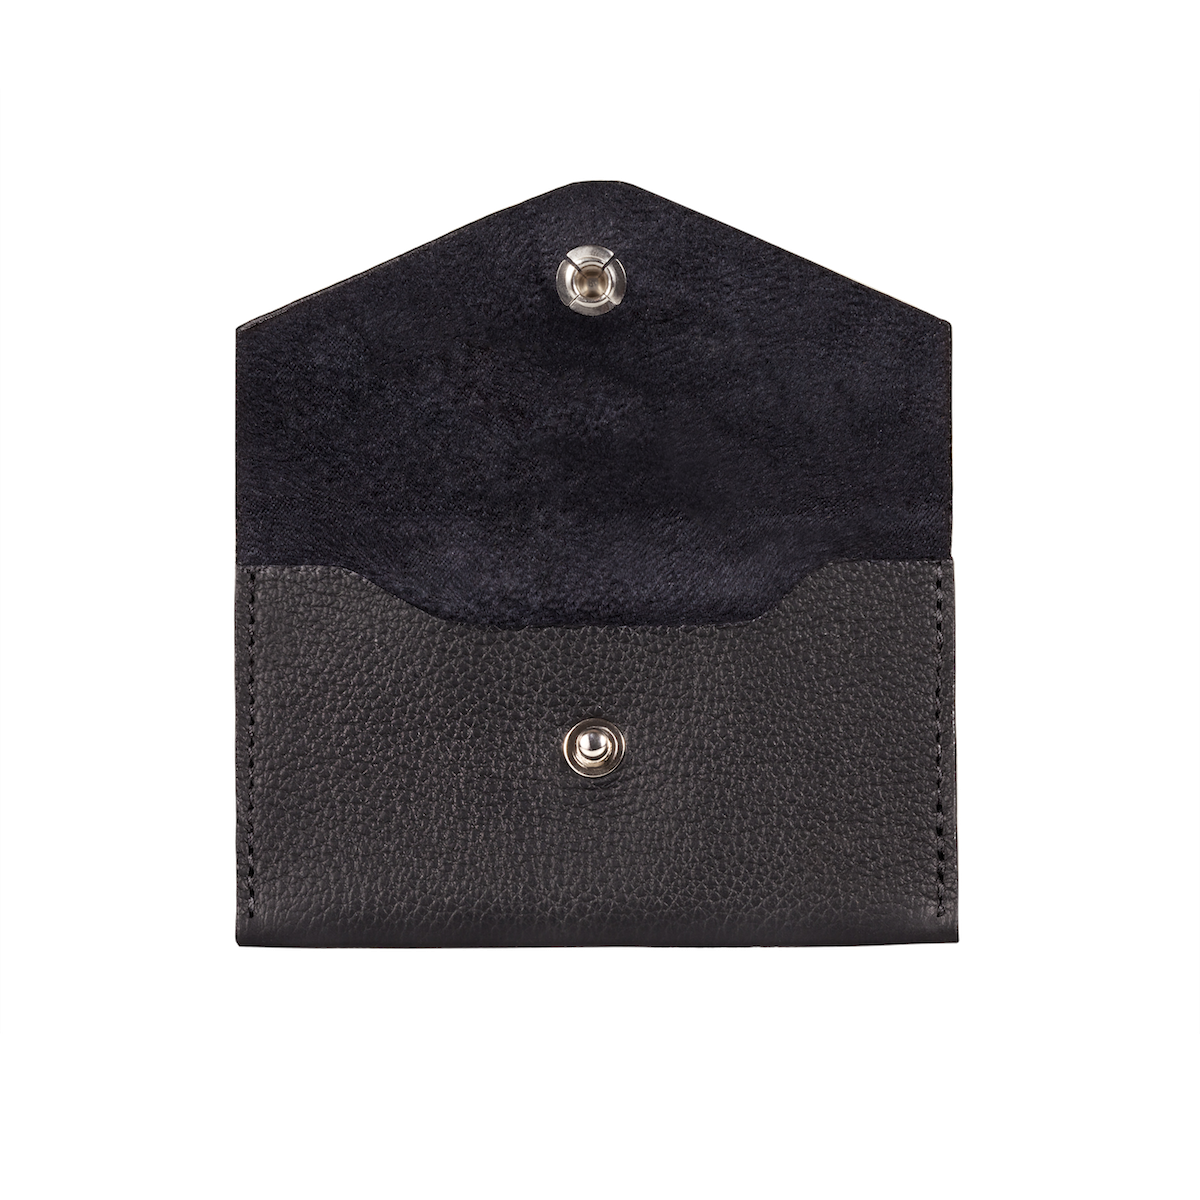 Business Card Holder, Grain Leather Black/Black, MAISON JMK-VONMEL Luxe Gifts